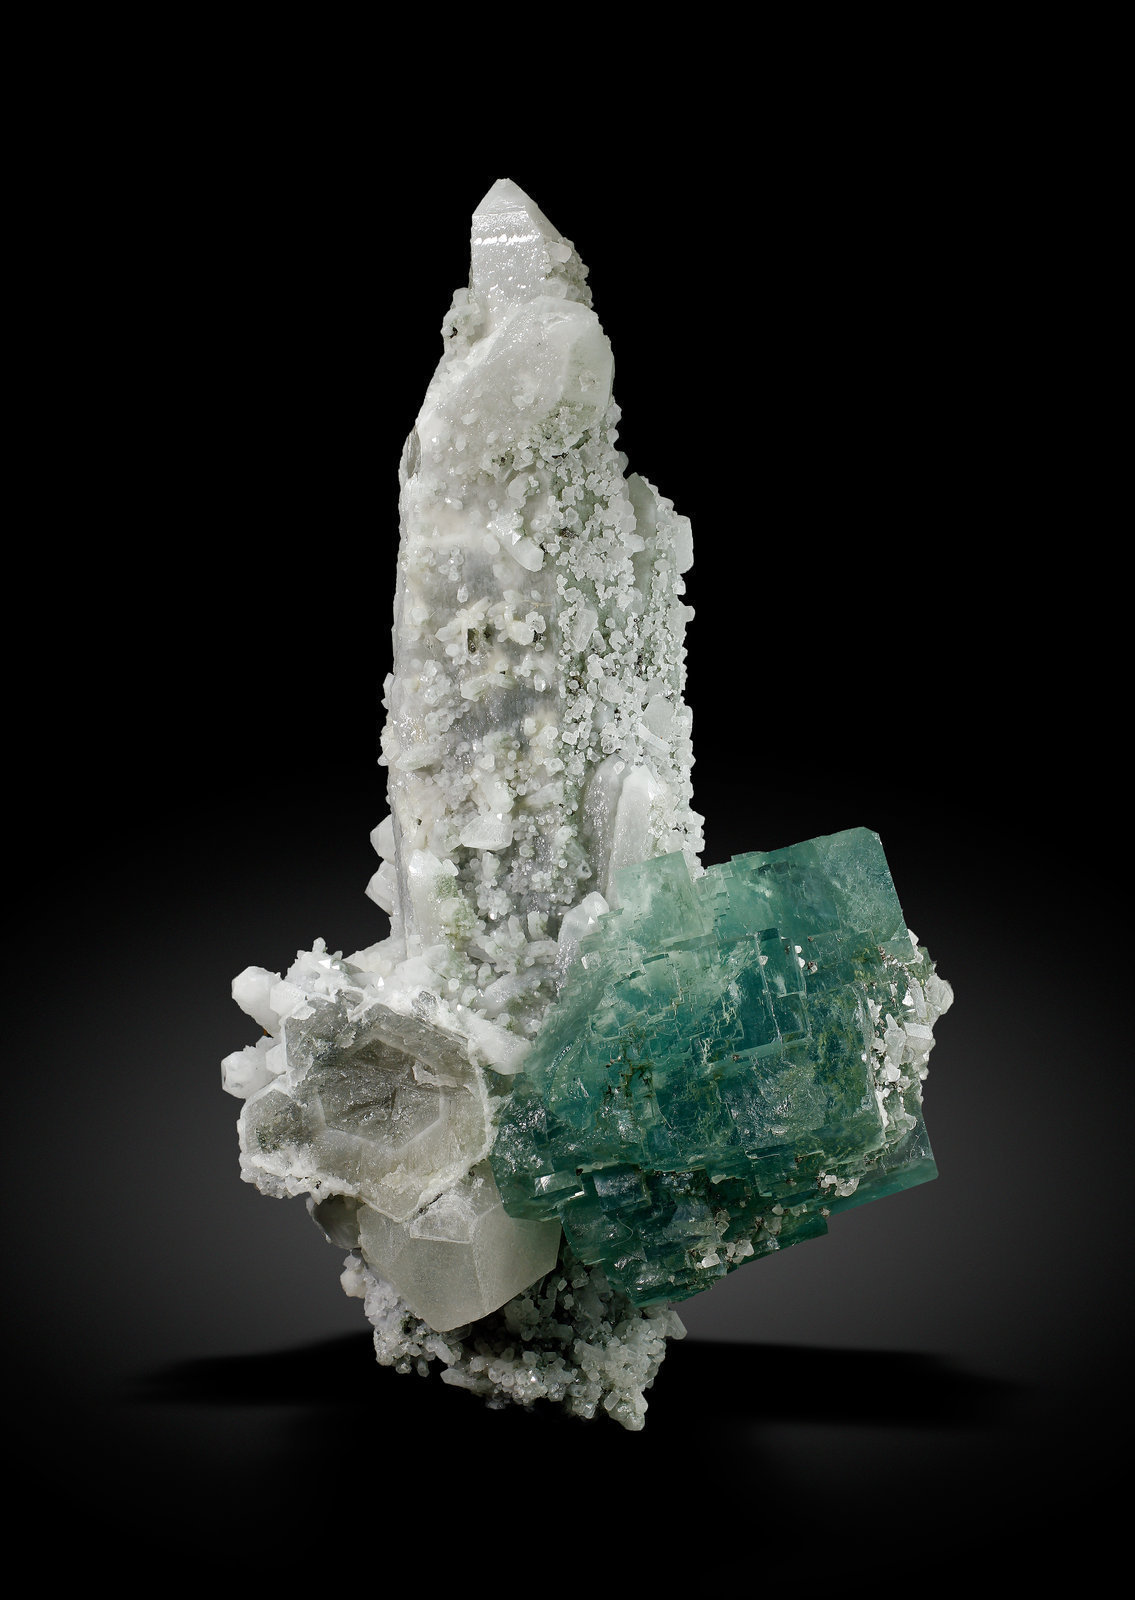 specimens/s_imagesAJ9/Fluorite-MP89AJ9_9254_f.jpg